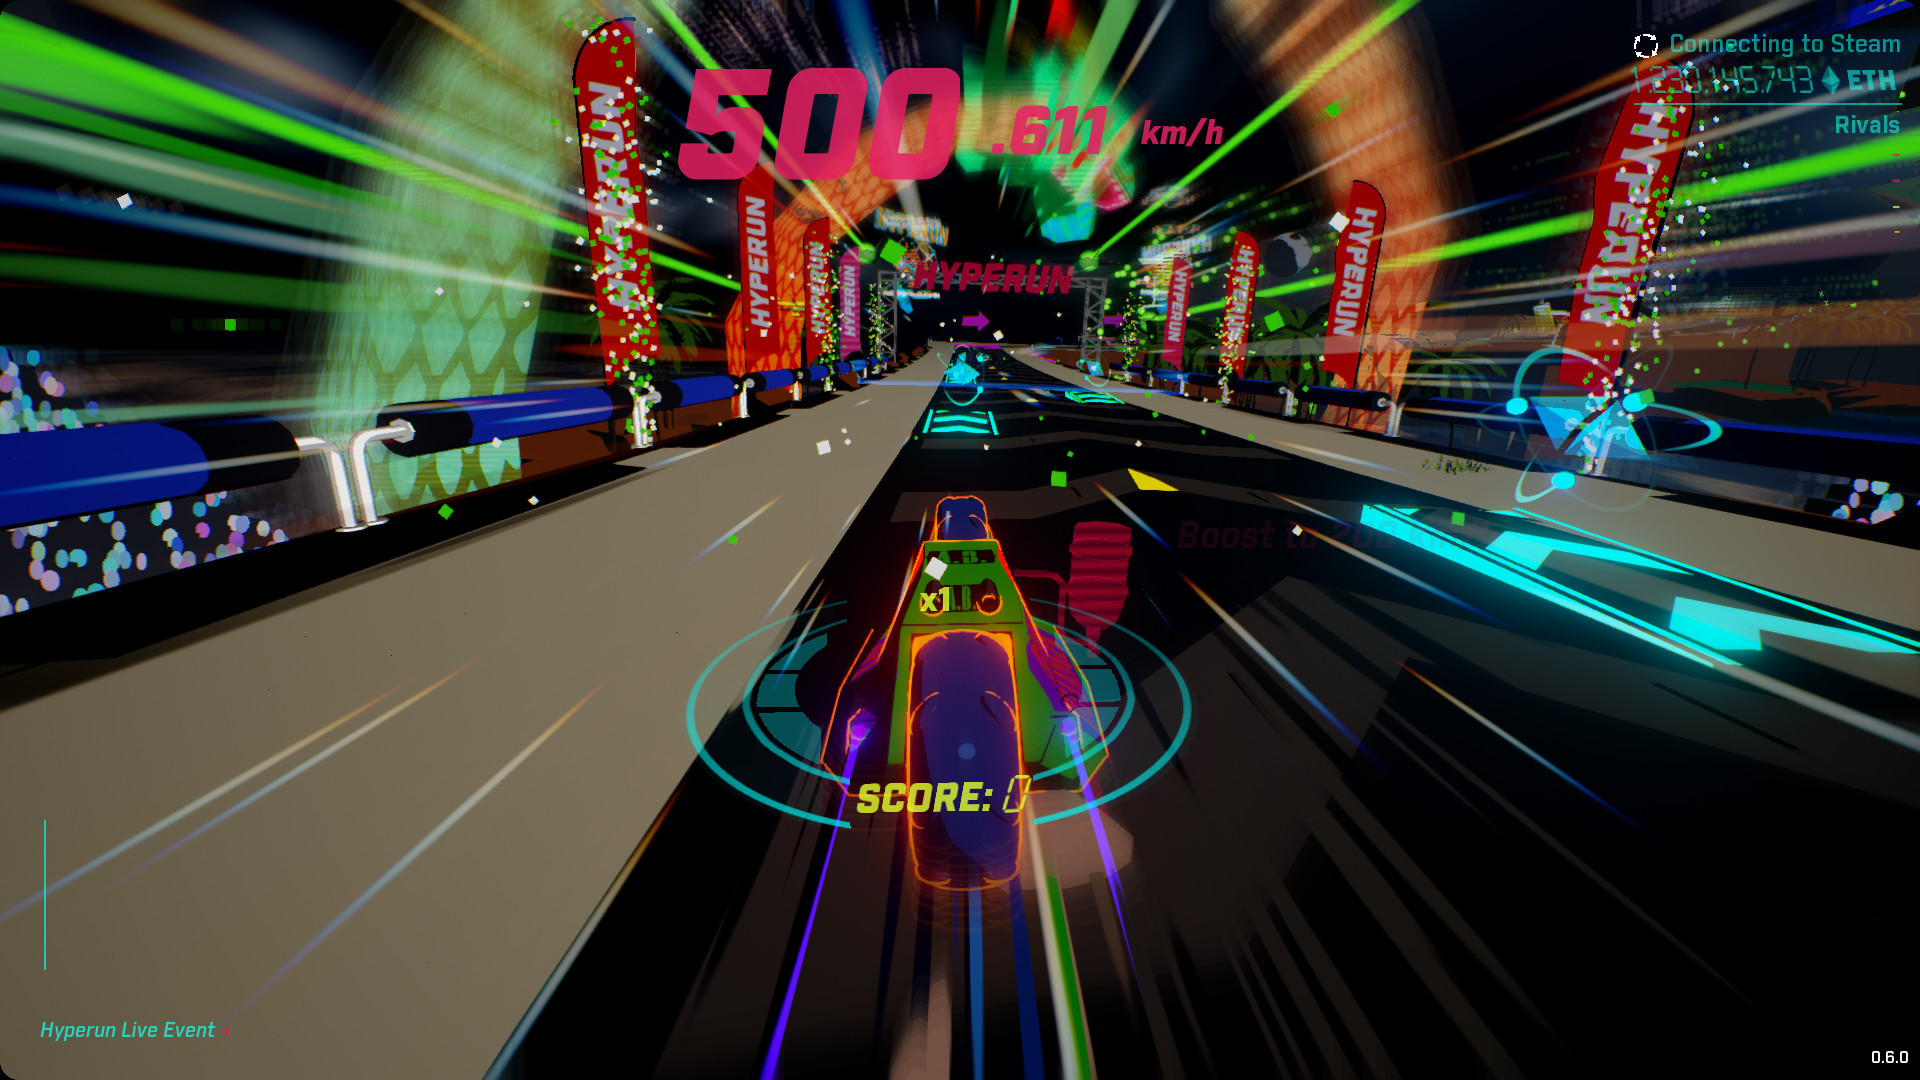 Hyperun screenshot